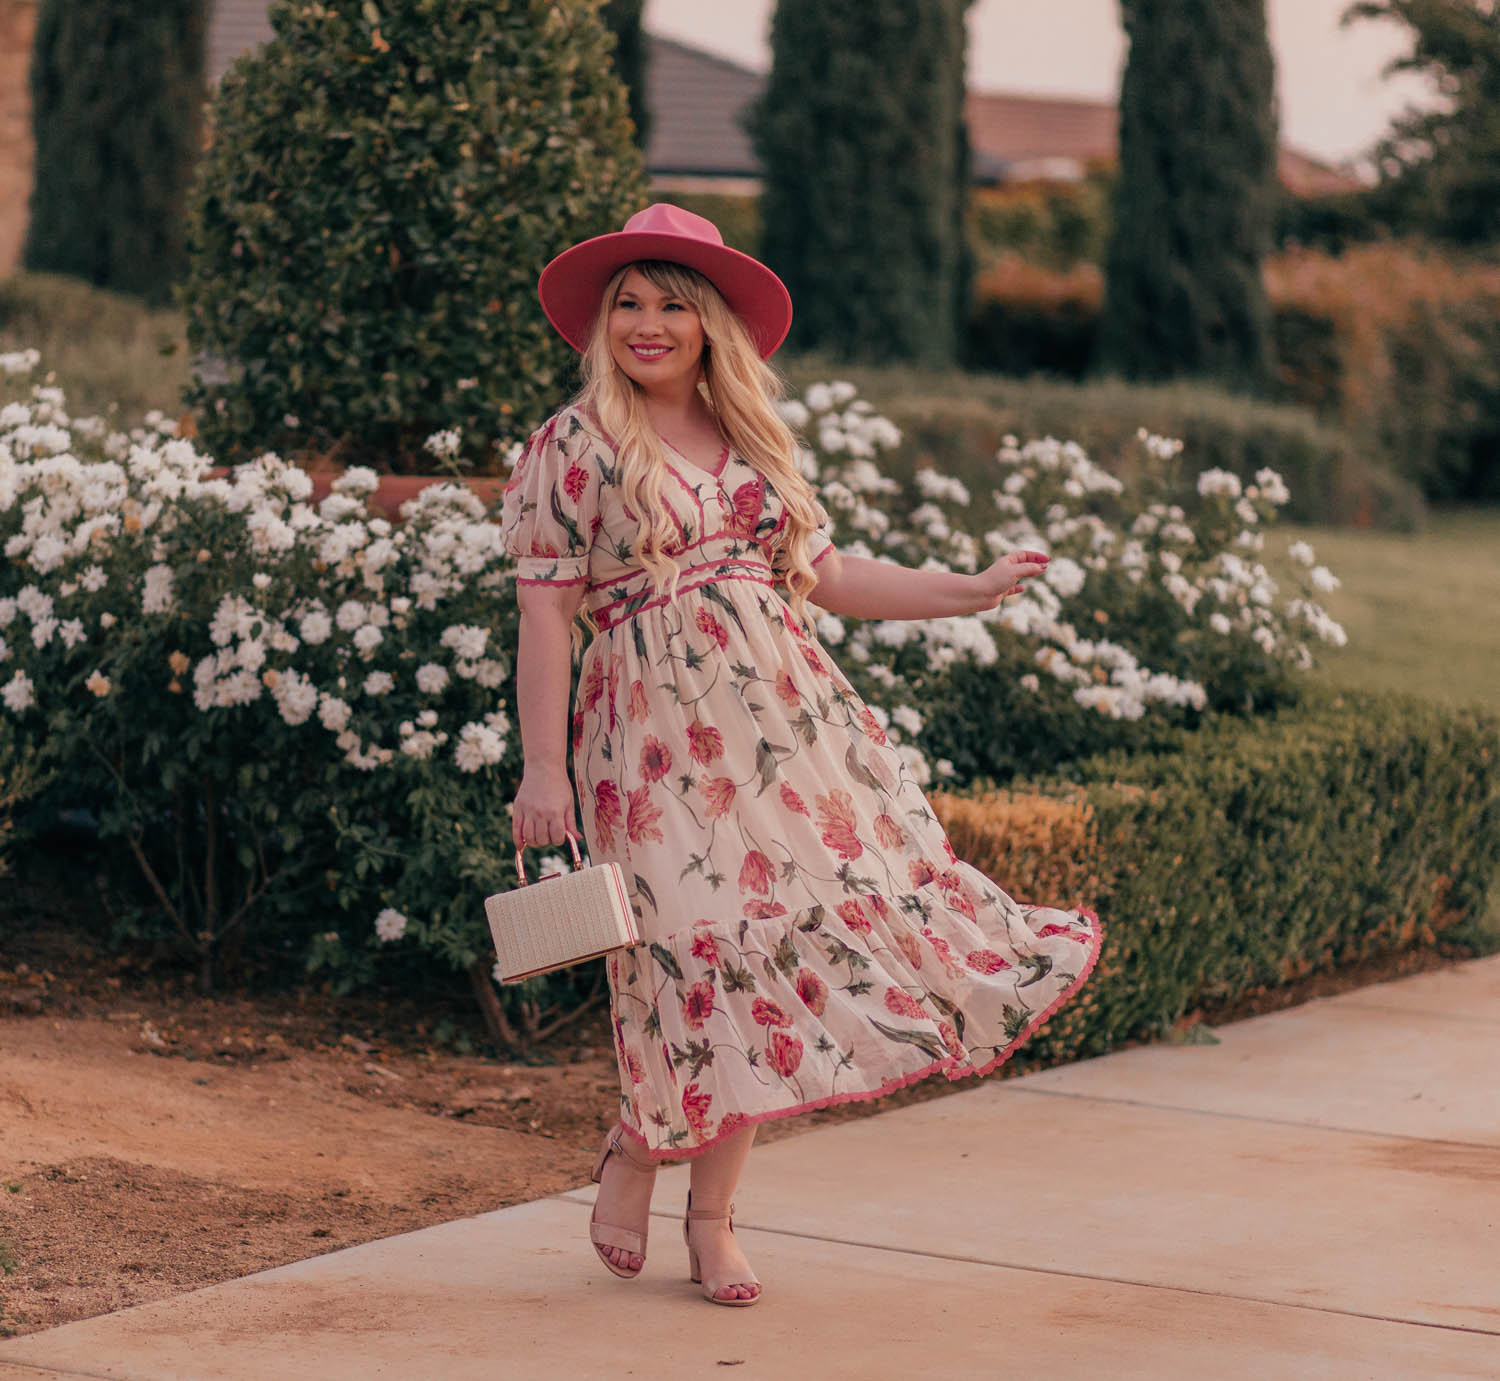 Transition a Floral Dress to Fall in 3 Ways